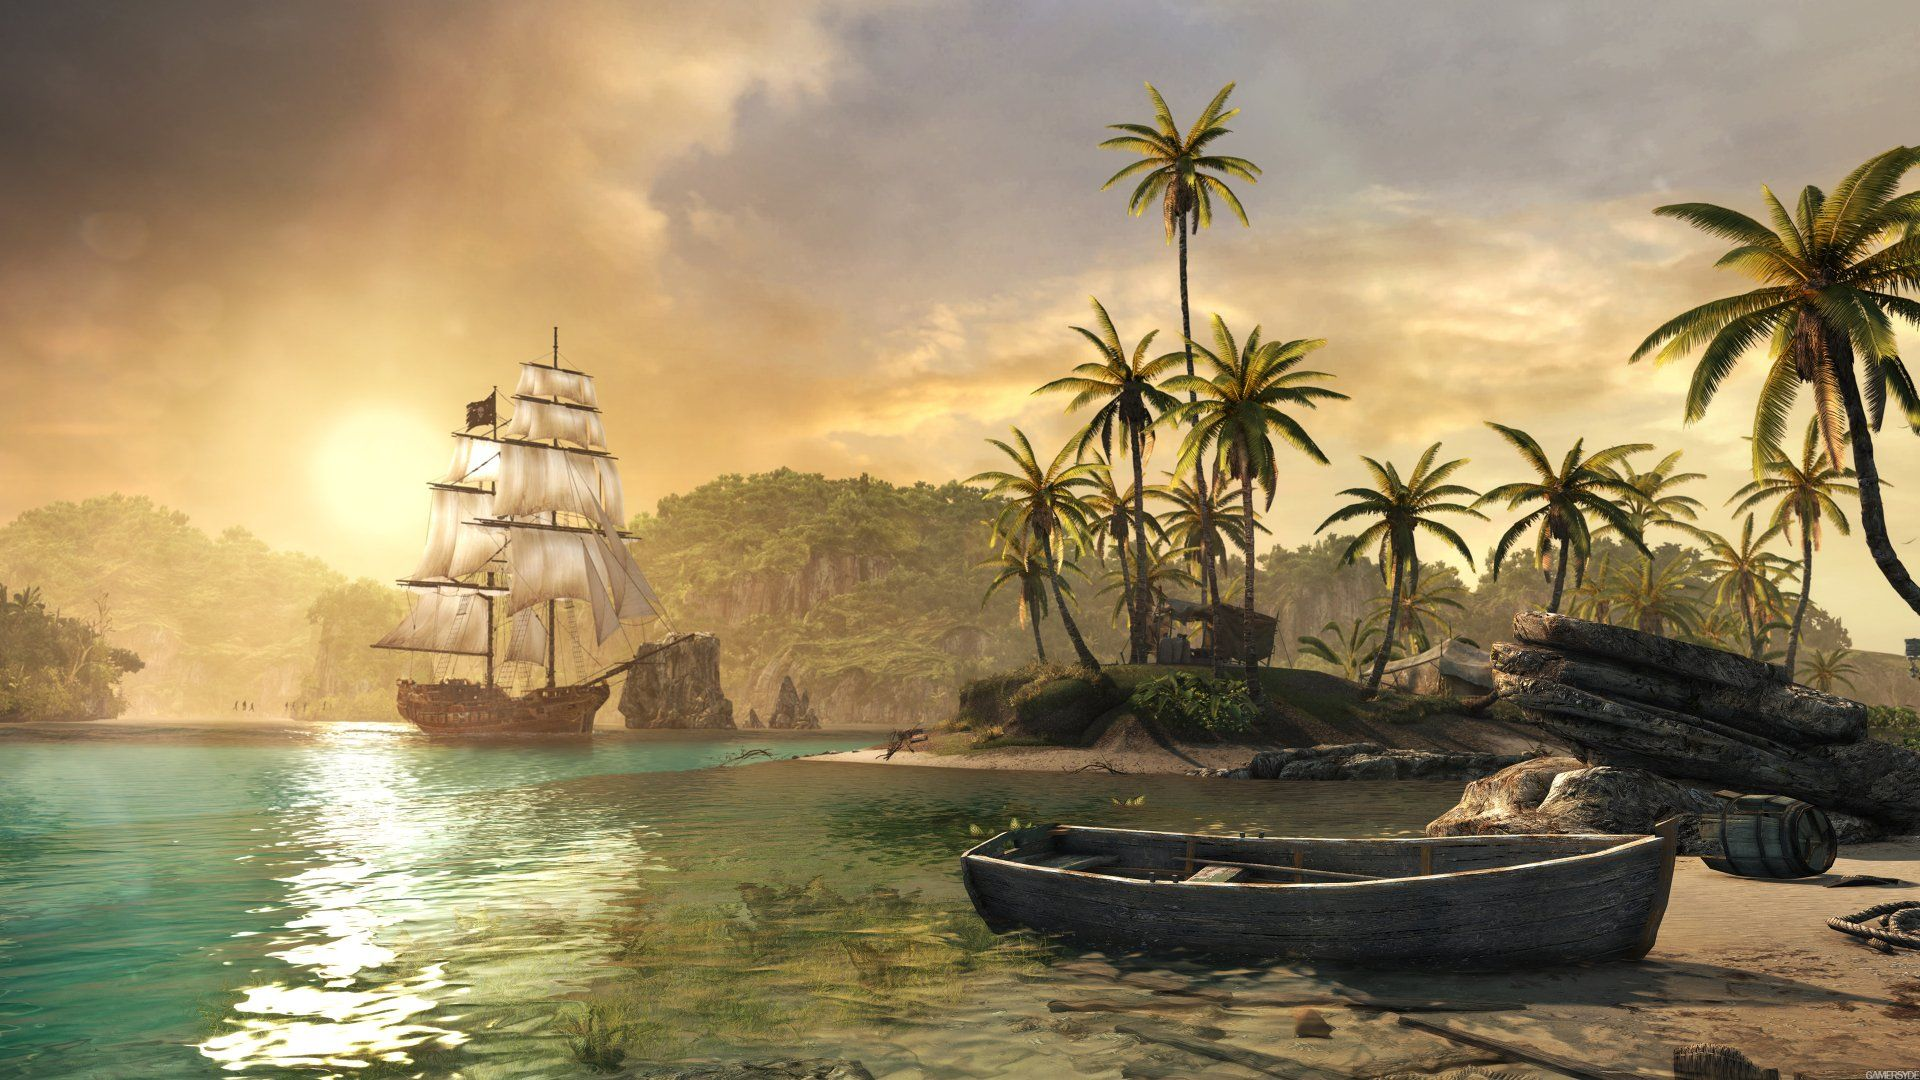 Video Game Assassin S Creed Iv Black Flag Wallpaper Assassins Creed 4 Assassins Creed Black Flag Background Images